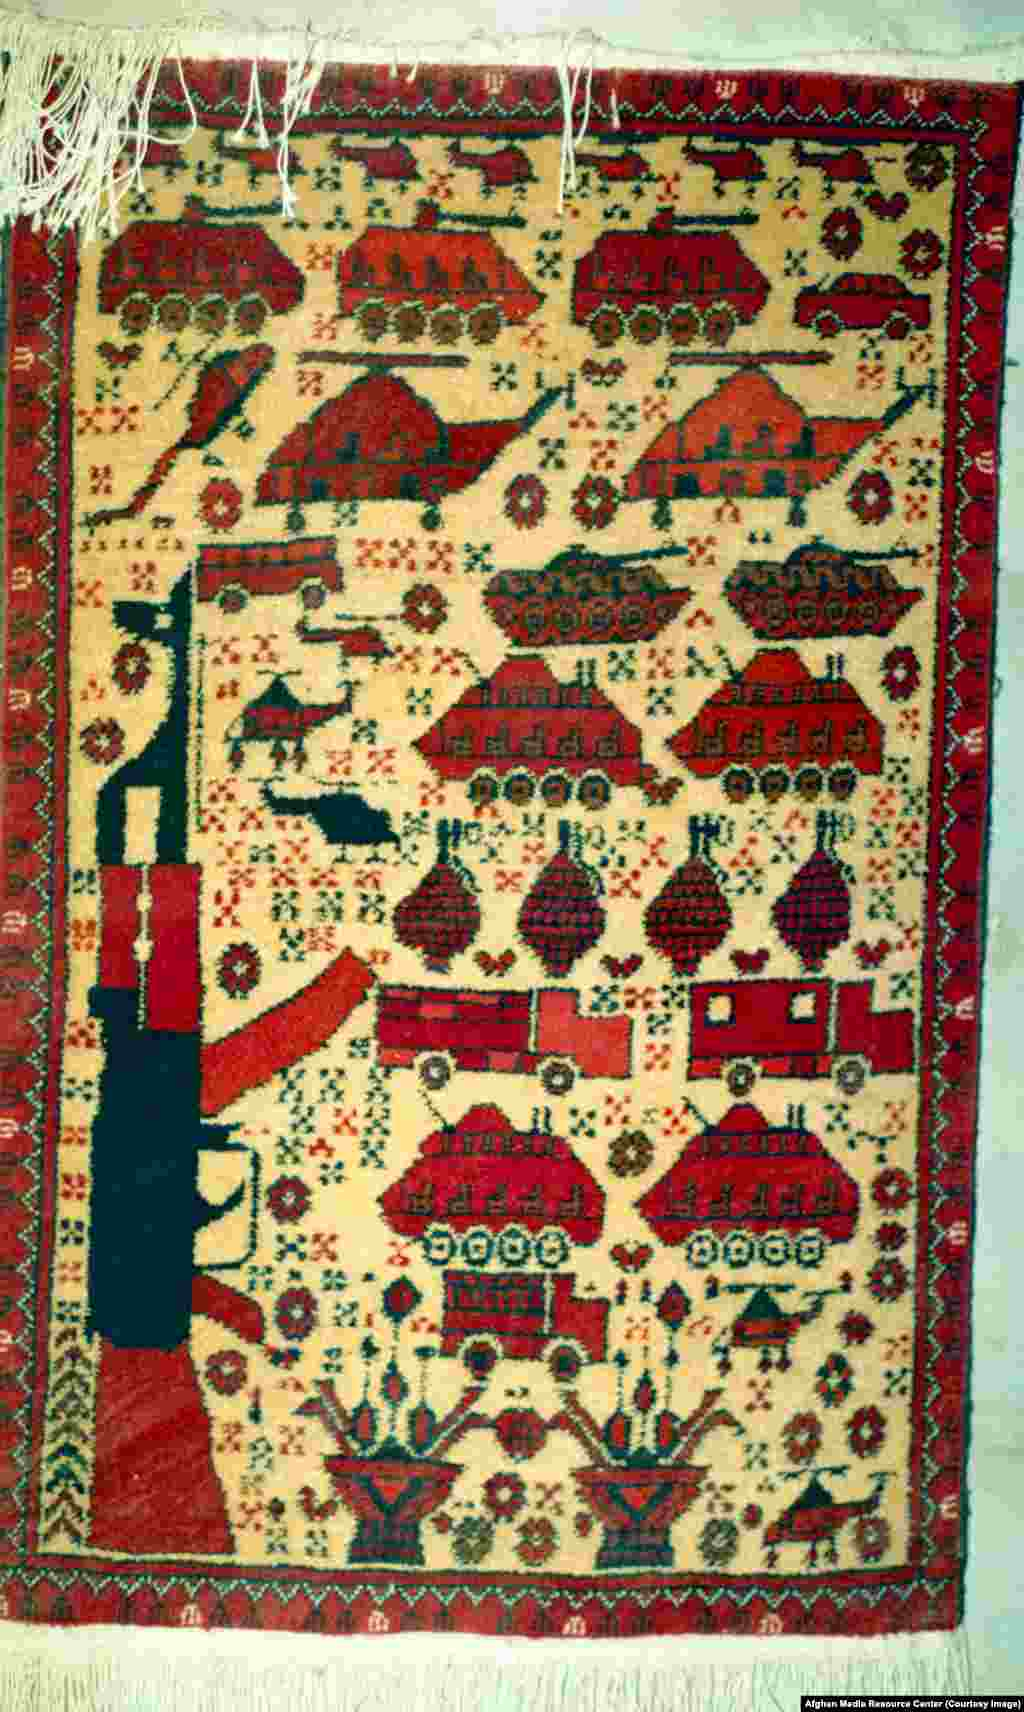 Soviet weaponry depicted on a carpet woven by Afghan refugees.